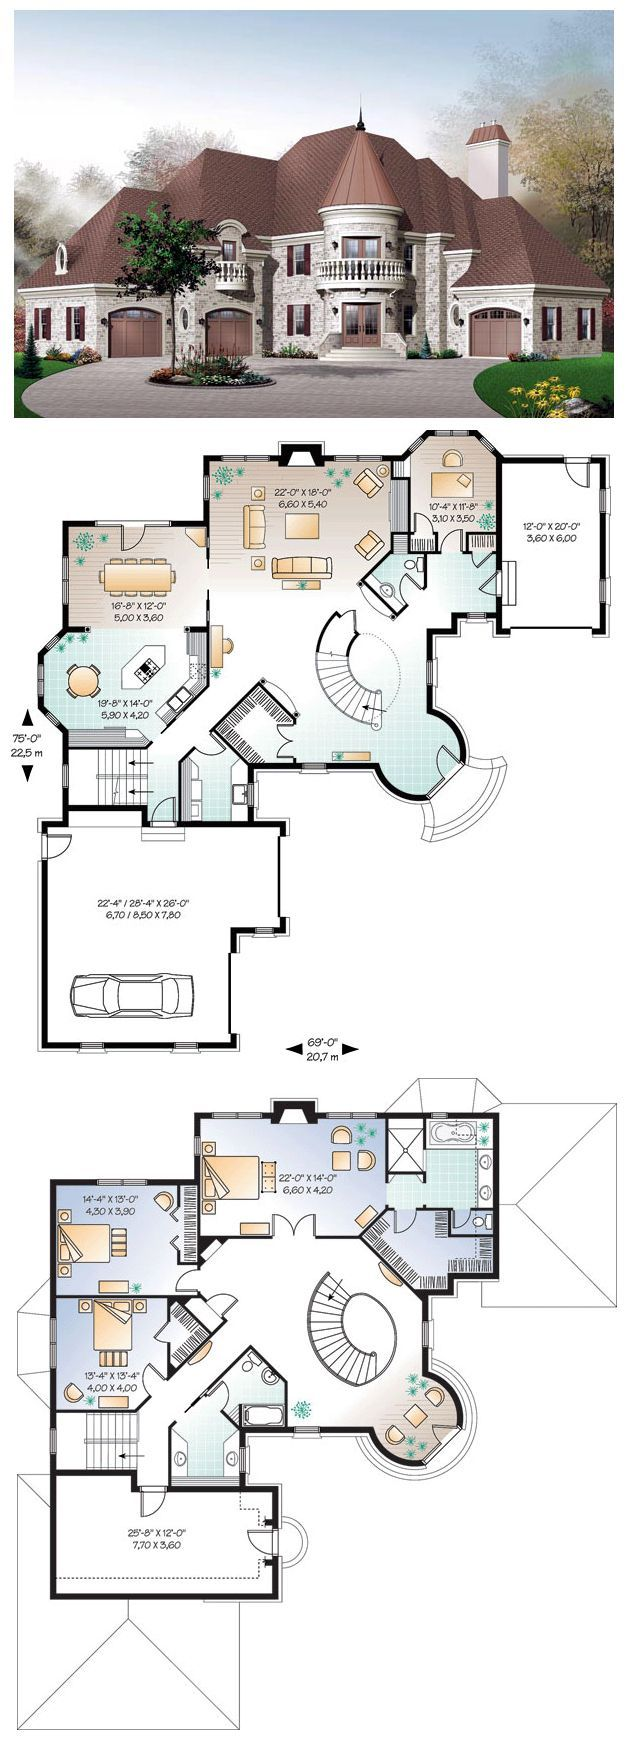 best maison images on pinterest future house house layouts and